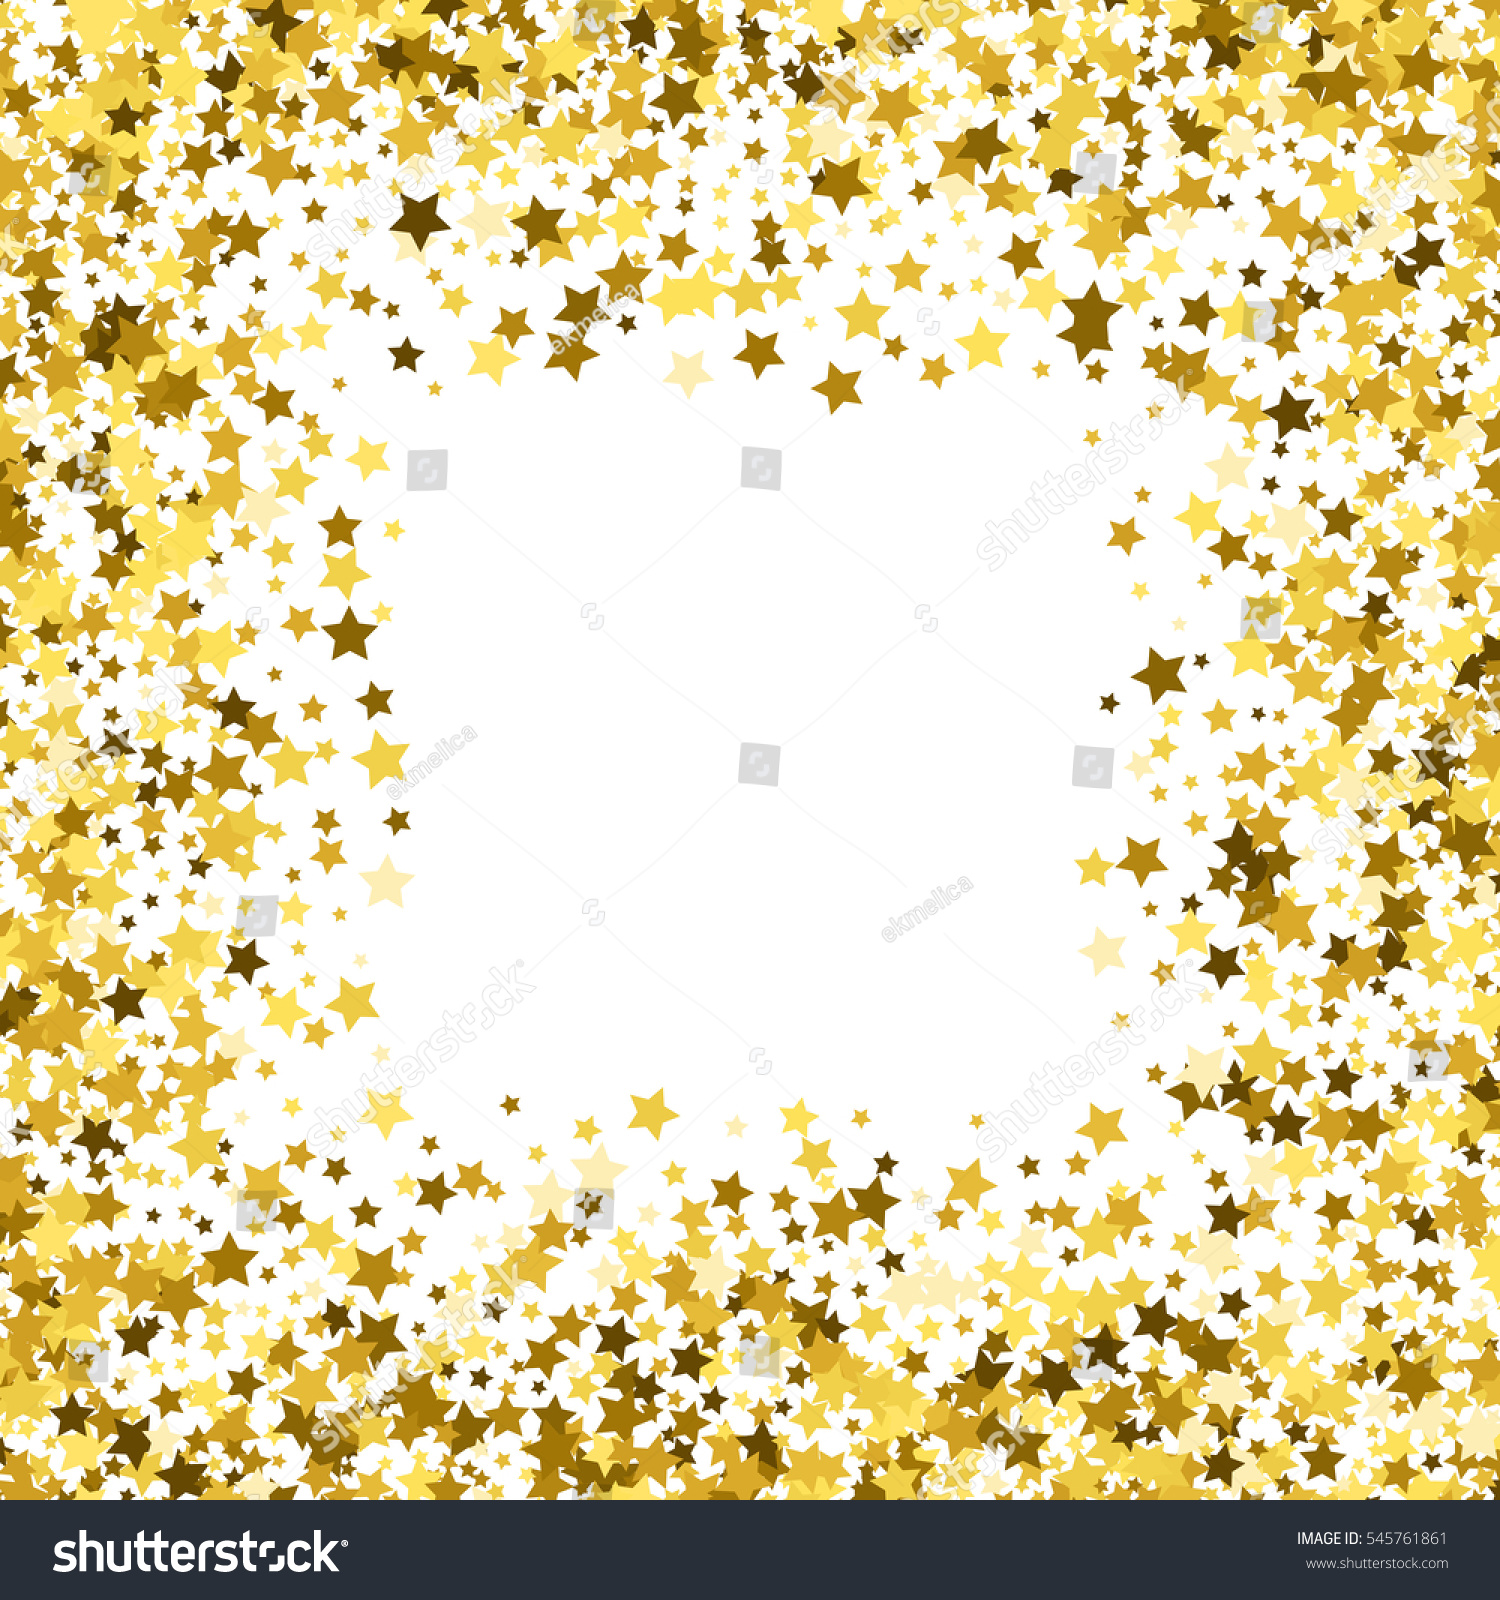 square gold frame or border of random scatter golden stars on white background design element